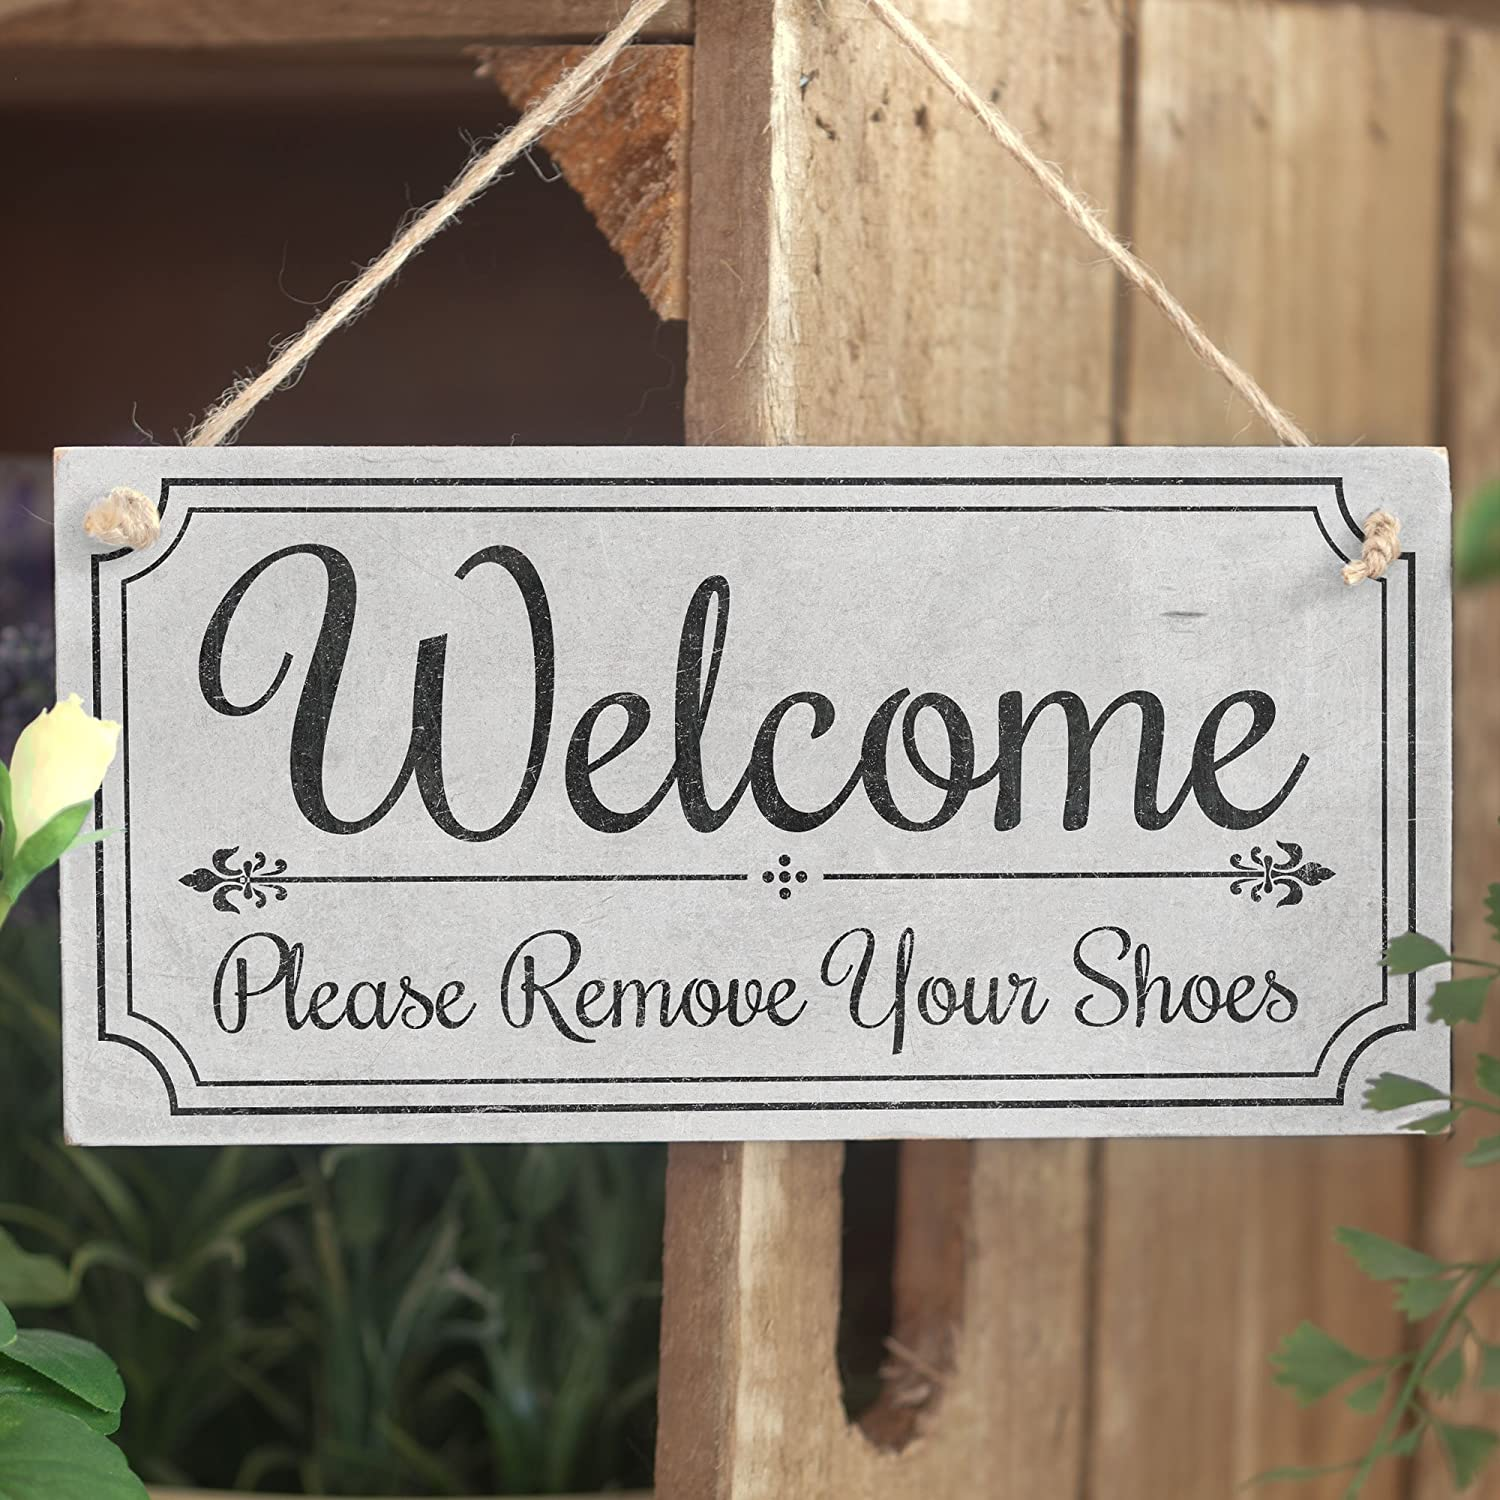 Welcome Please Remove Your Shoes\' - Cute Welcome Sign - Handmade ...